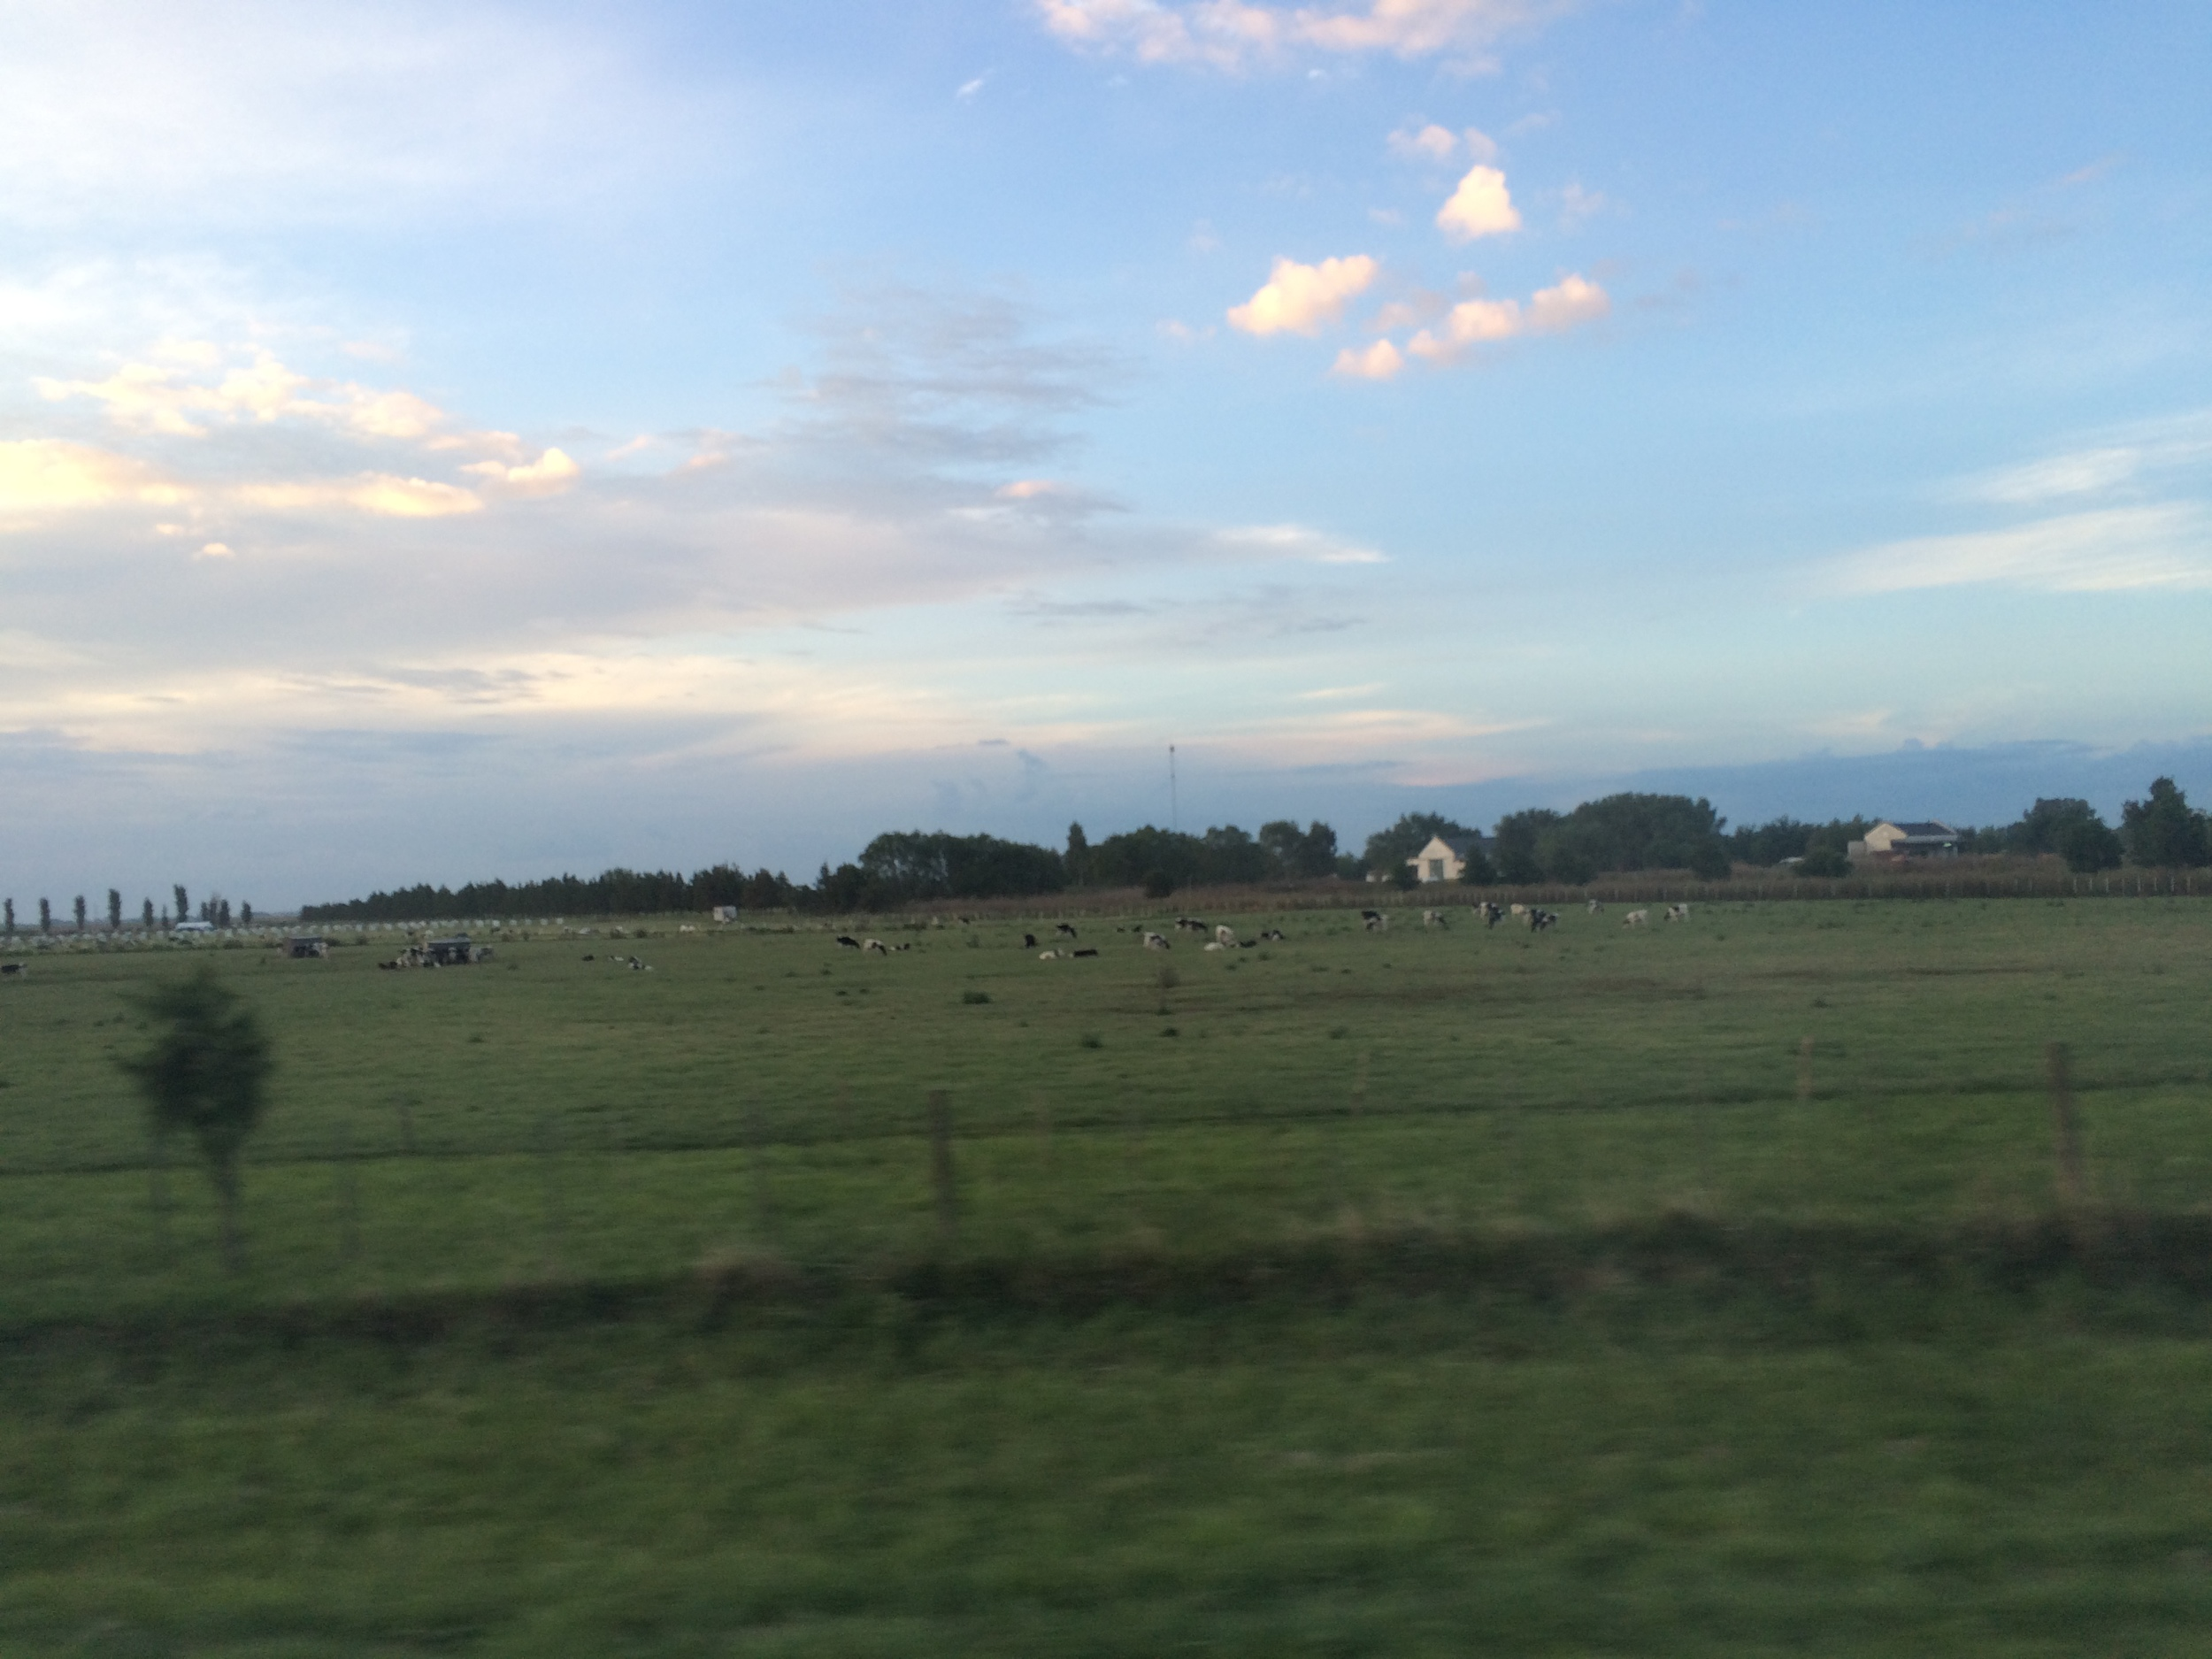 Dairy farms with hundreds of cows could be seen throughout the country side.